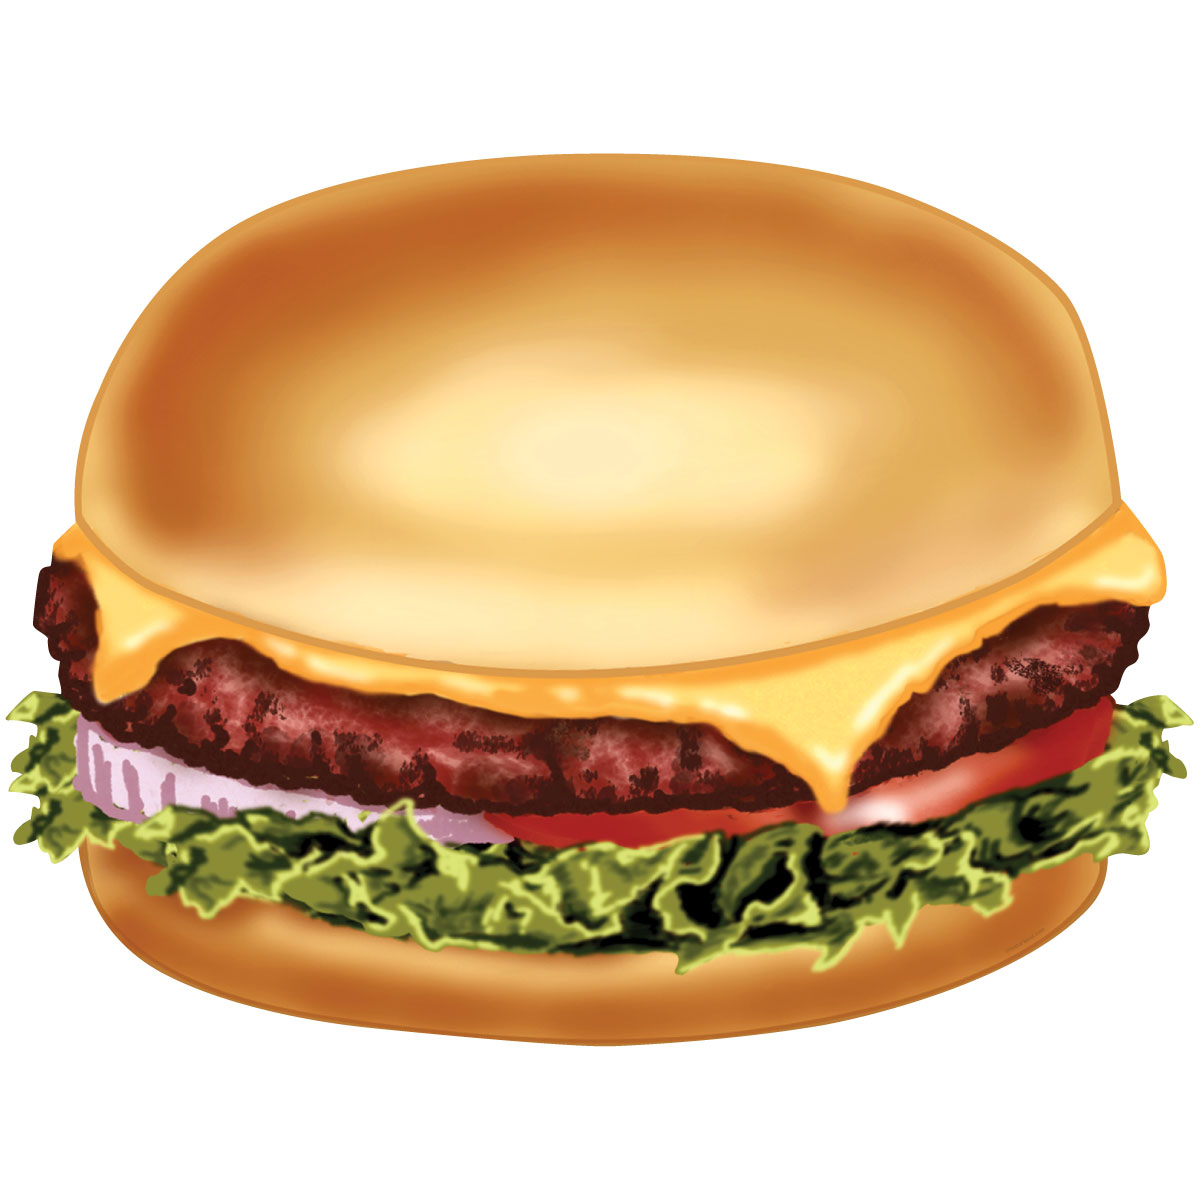 Cheeseburger Diner Food Cut Out Wall Decal | Kitchen Wall Art ...